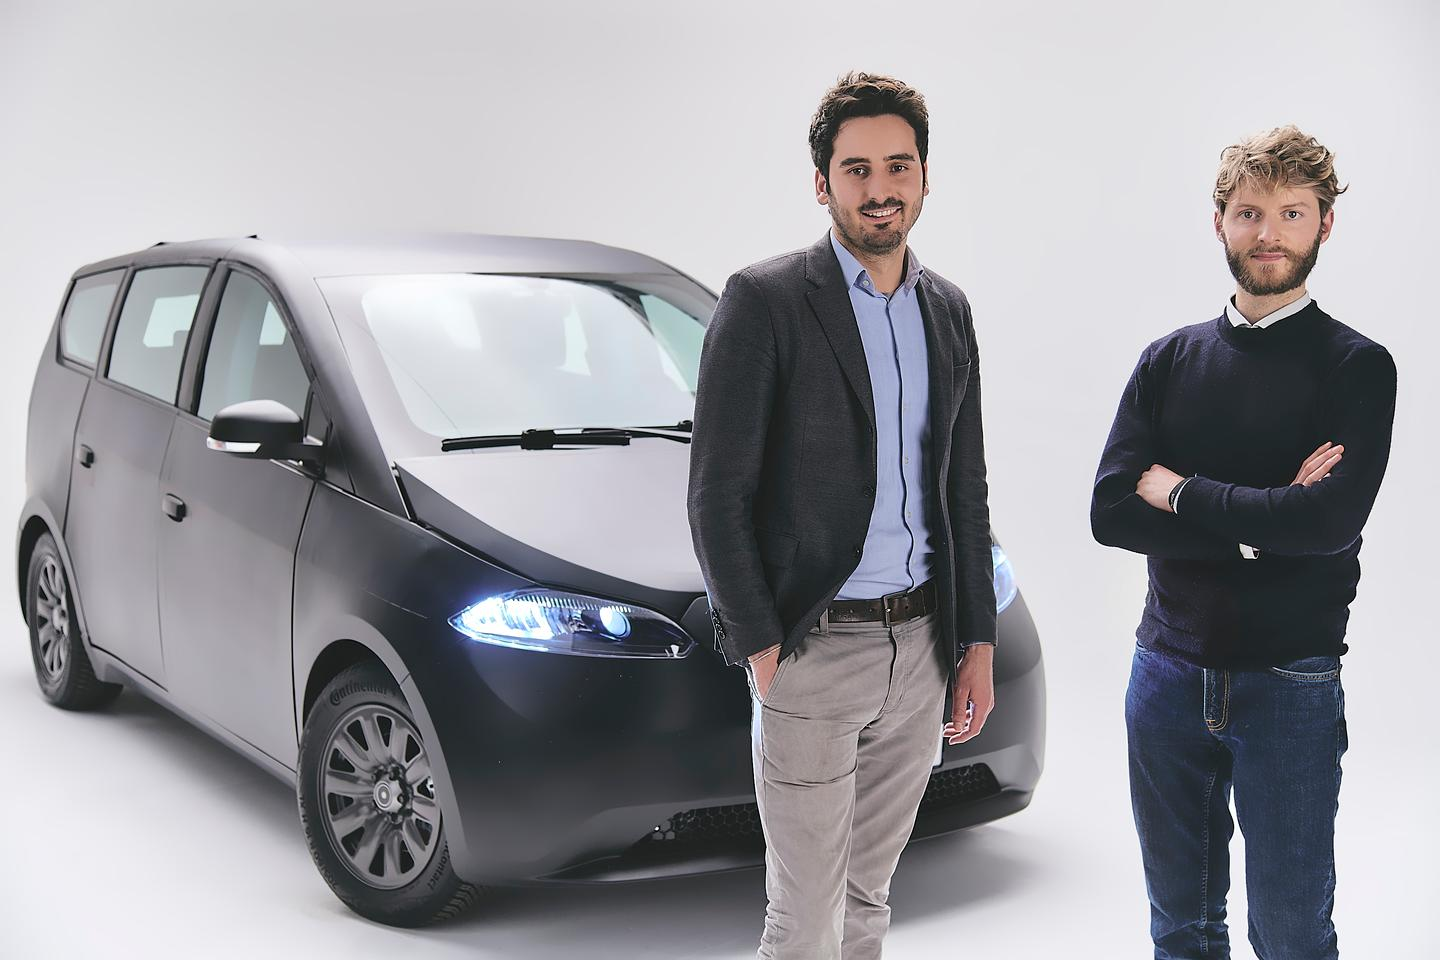 Company founders Laurin Hahn and Jona Christians with the second generation Sion SEV prototype